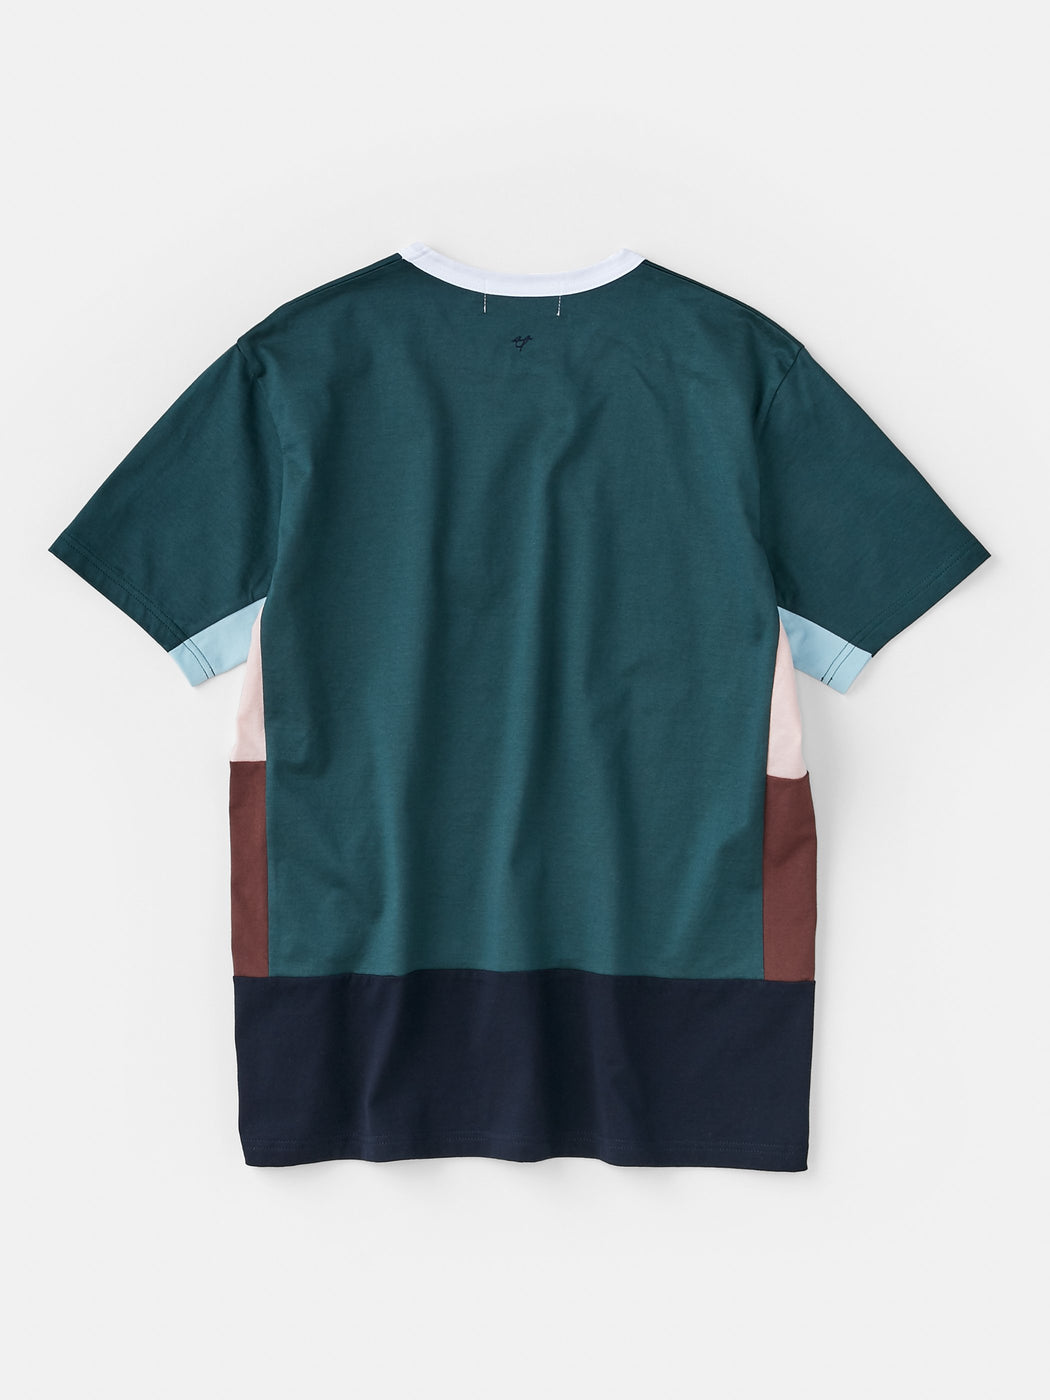 ALOYE Color Blocks Men's Short Sleeve T-shirt Heather Gray-green